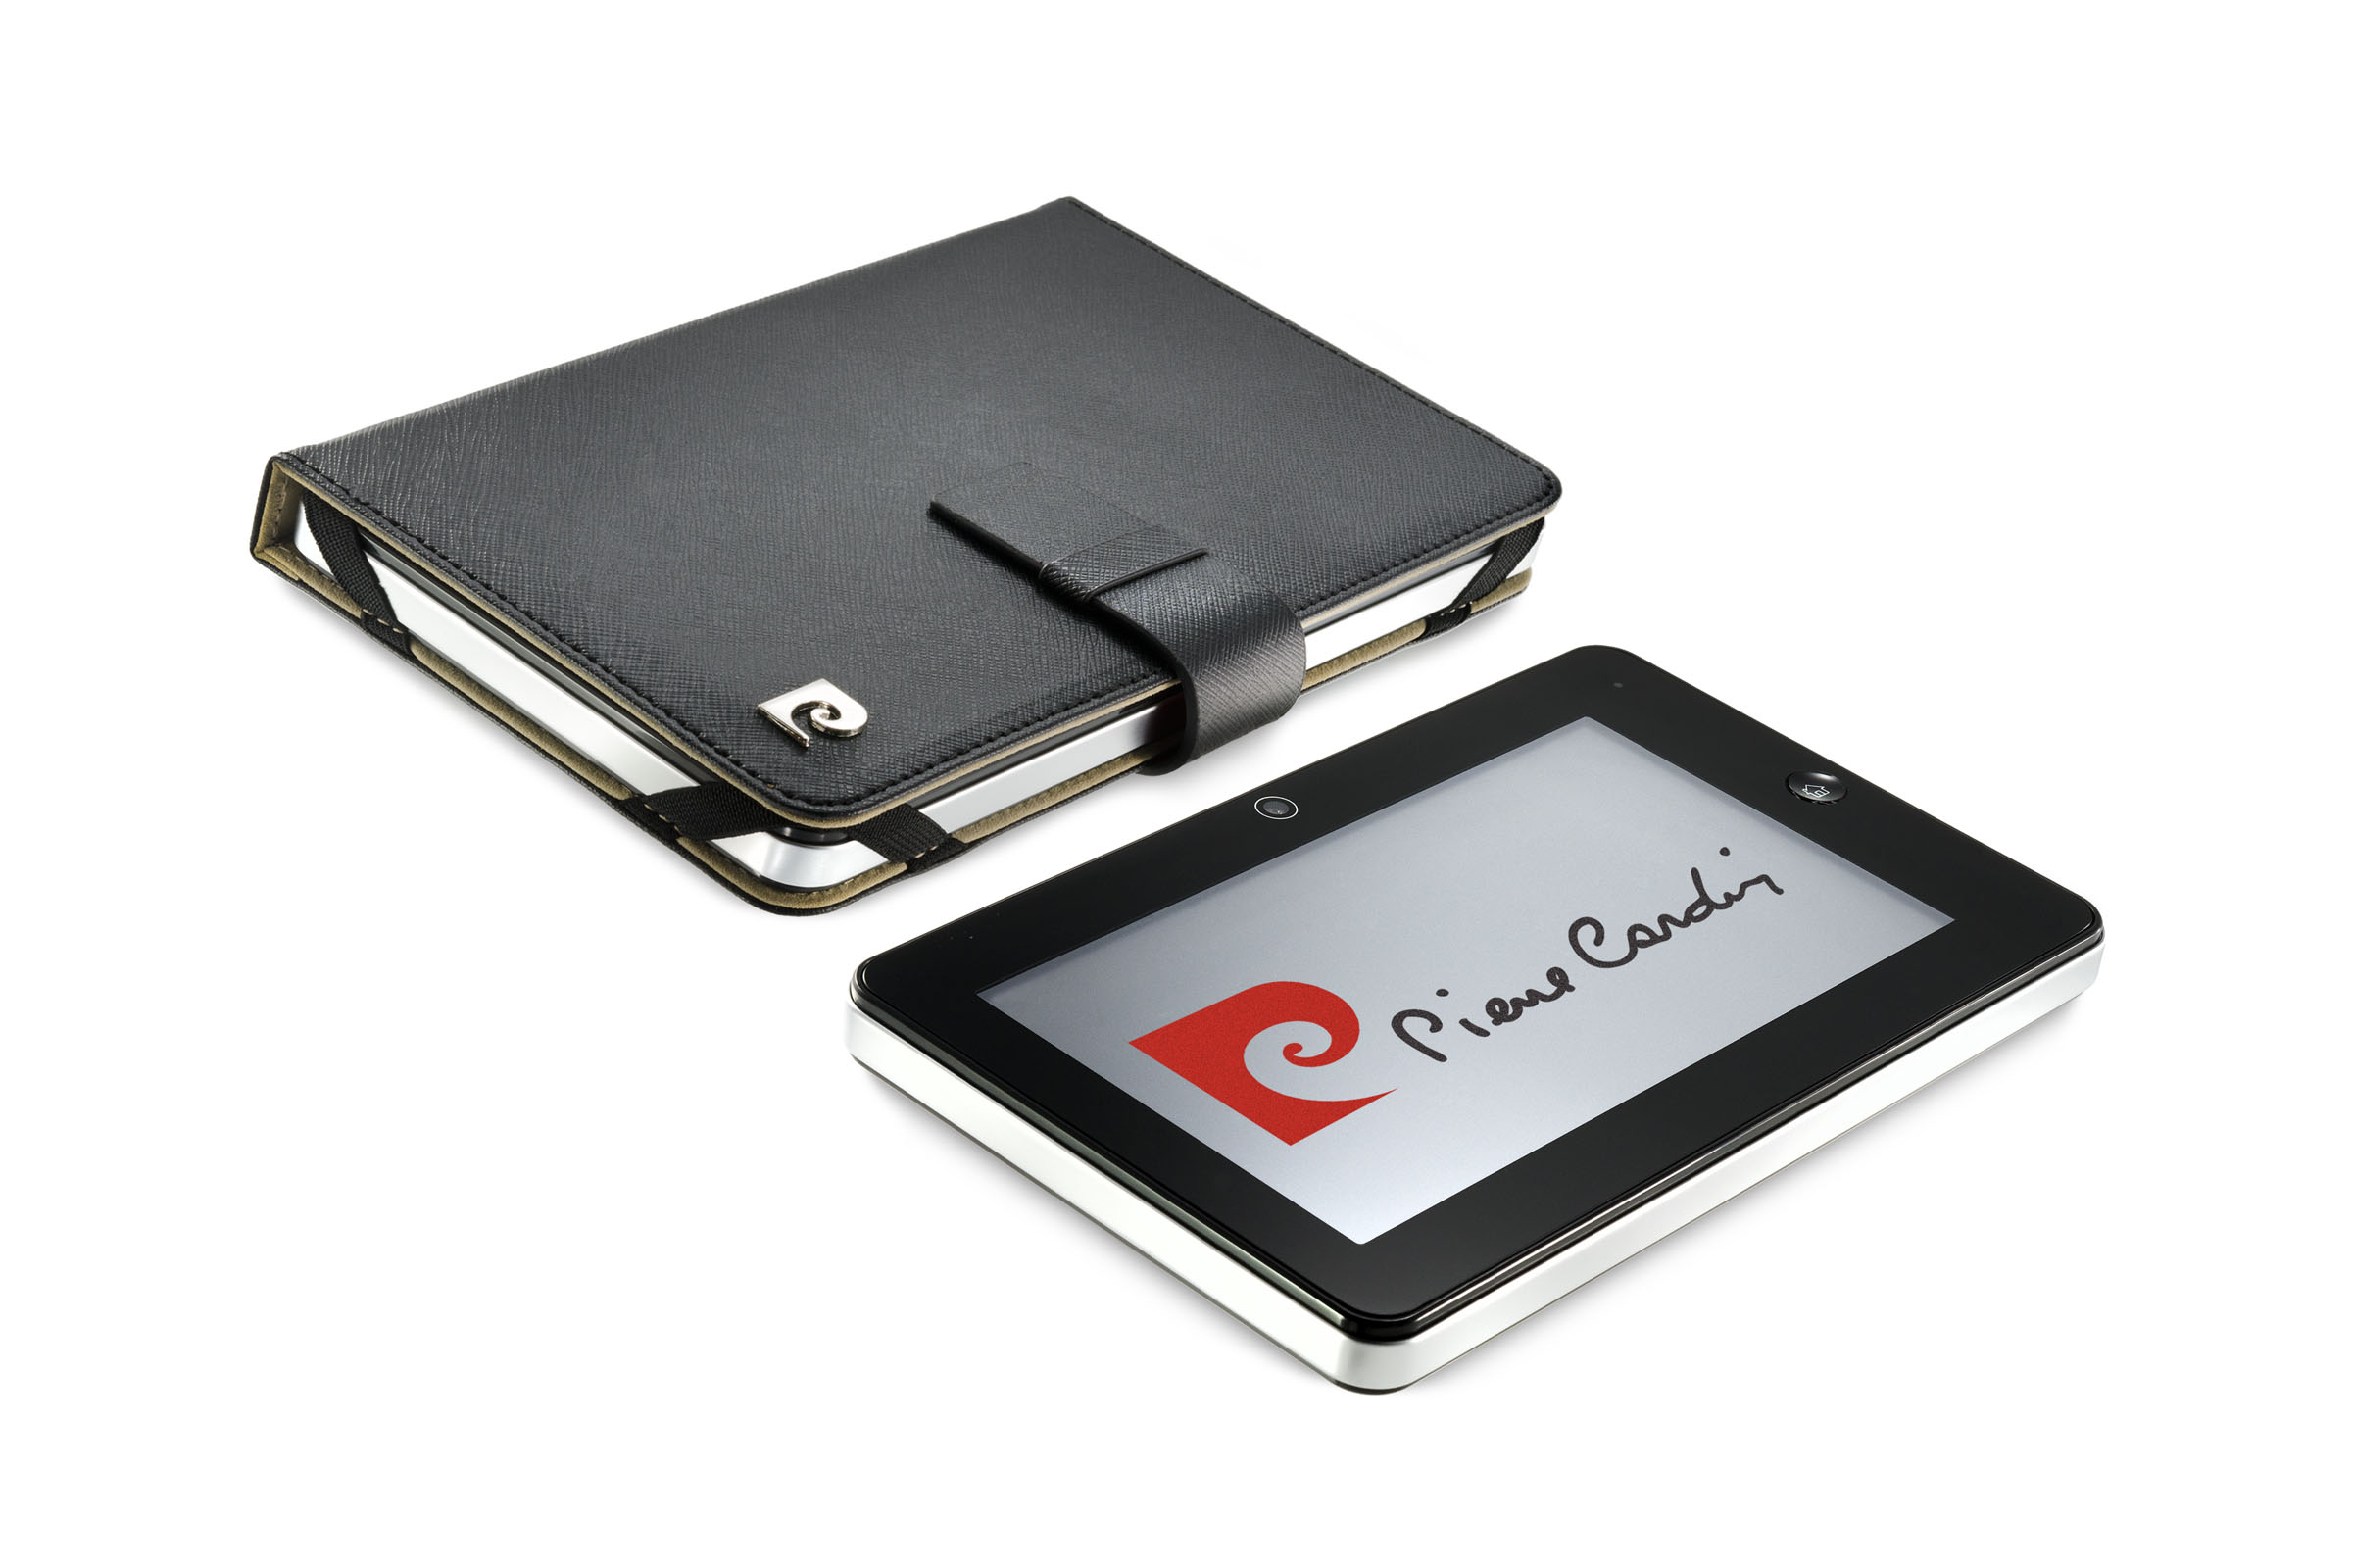 Pierre Cardin PC-7006 7-inch Android Tablet released in UK; Specs and Price